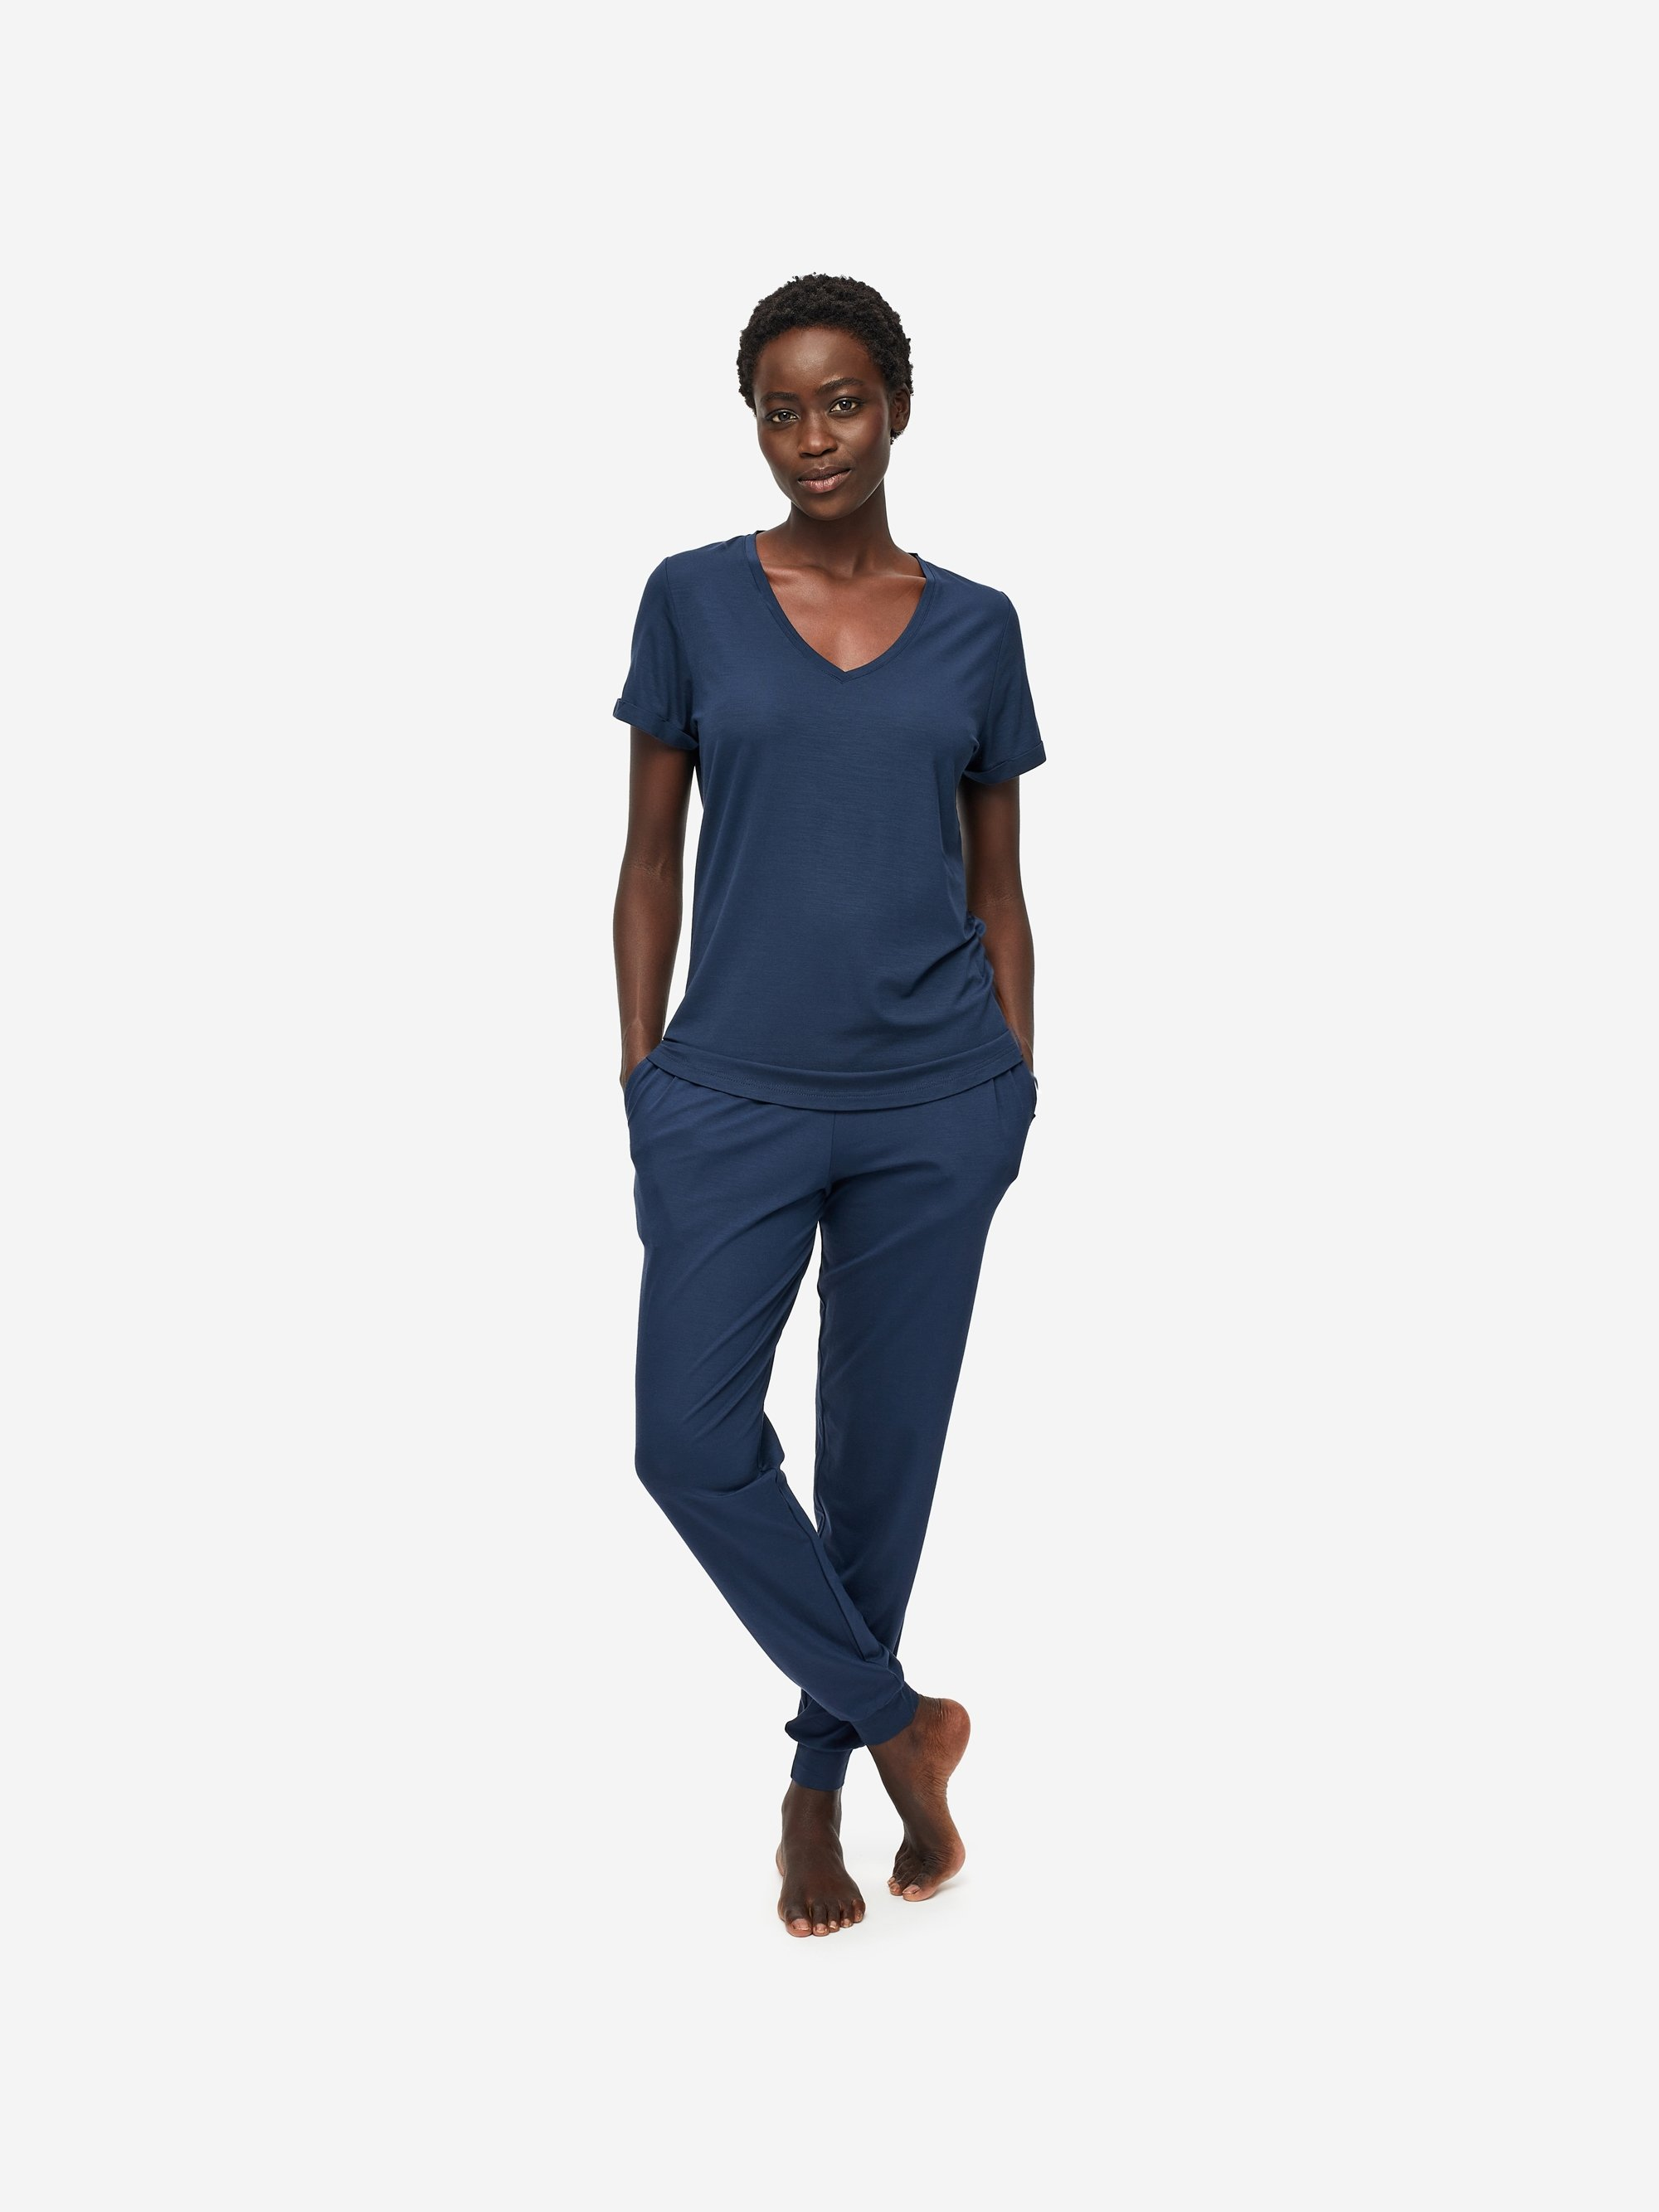 Women's V-Neck T-Shirt Lara Micro Modal Stretch Navy